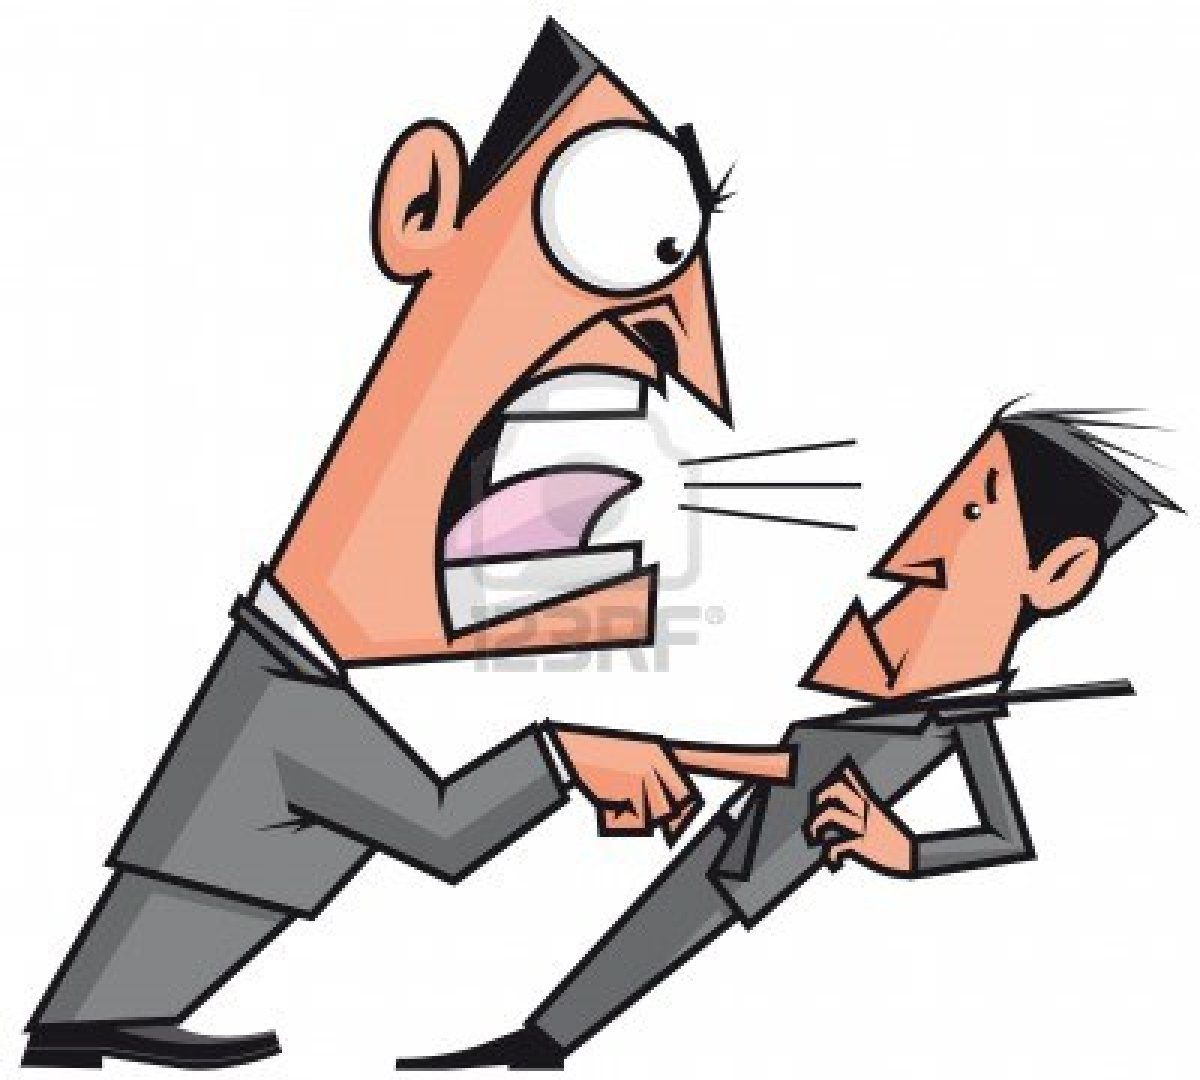 Boss clipart demanding. Things you should avoid